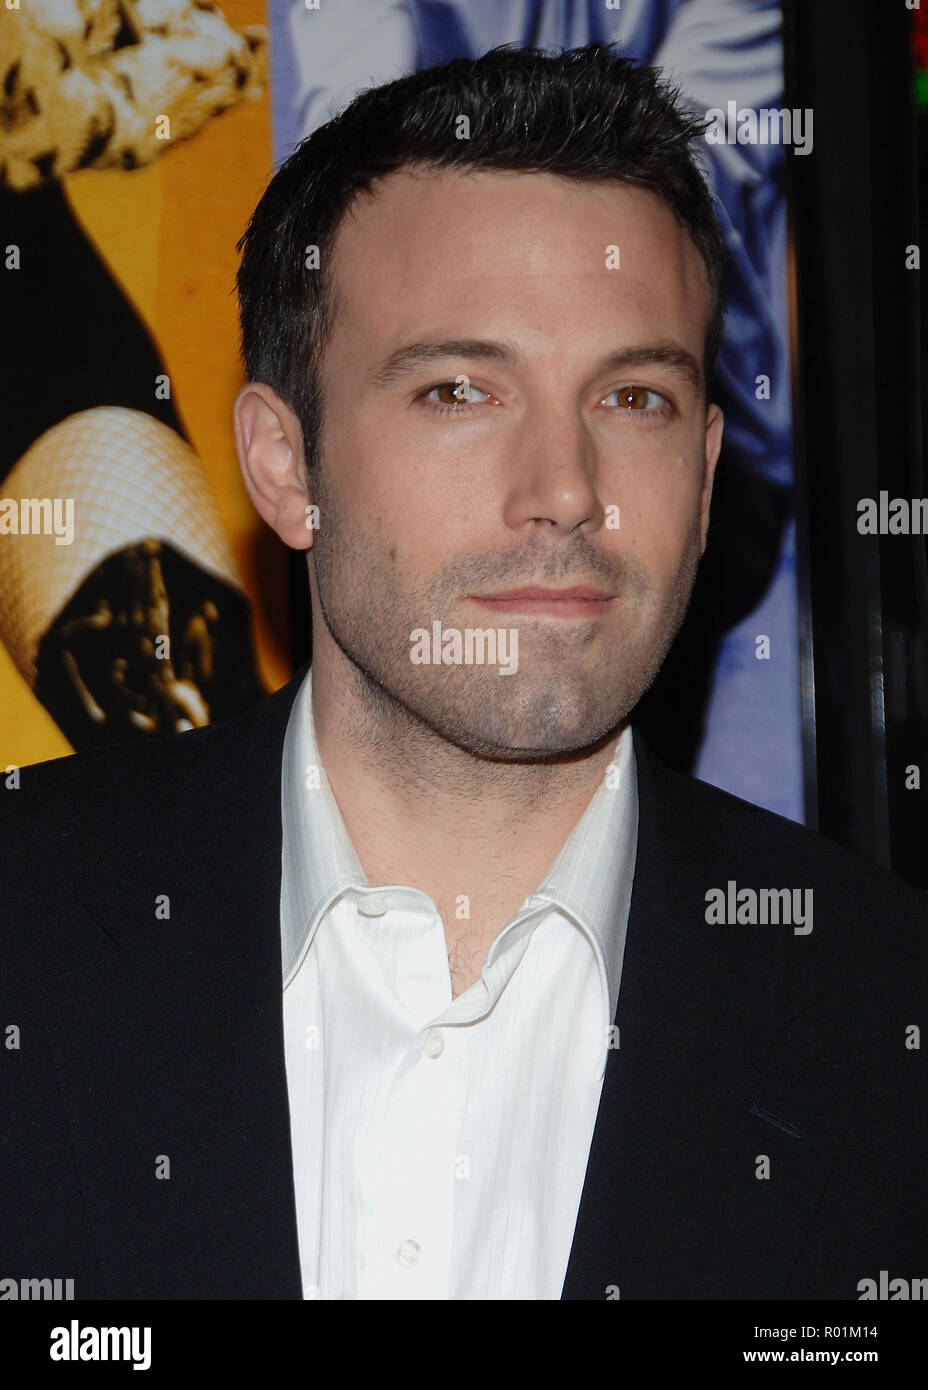 Ben Affleck arriving at the Smokin' Aces at the Chinese Theatre In Los Angeles. January 18, 2007.  eye contact headshot 06_AffleckBen053 Red Carpet Event, Vertical, USA, Film Industry, Celebrities,  Photography, Bestof, Arts Culture and Entertainment, Topix Celebrities fashion /  Vertical, Best of, Event in Hollywood Life - California,  Red Carpet and backstage, USA, Film Industry, Celebrities,  movie celebrities, TV celebrities, Music celebrities, Photography, Bestof, Arts Culture and Entertainment,  Topix, headshot, vertical, one person,, from the year , 2007, inquiry tsuni@Gamma-USA.com - Stock Image